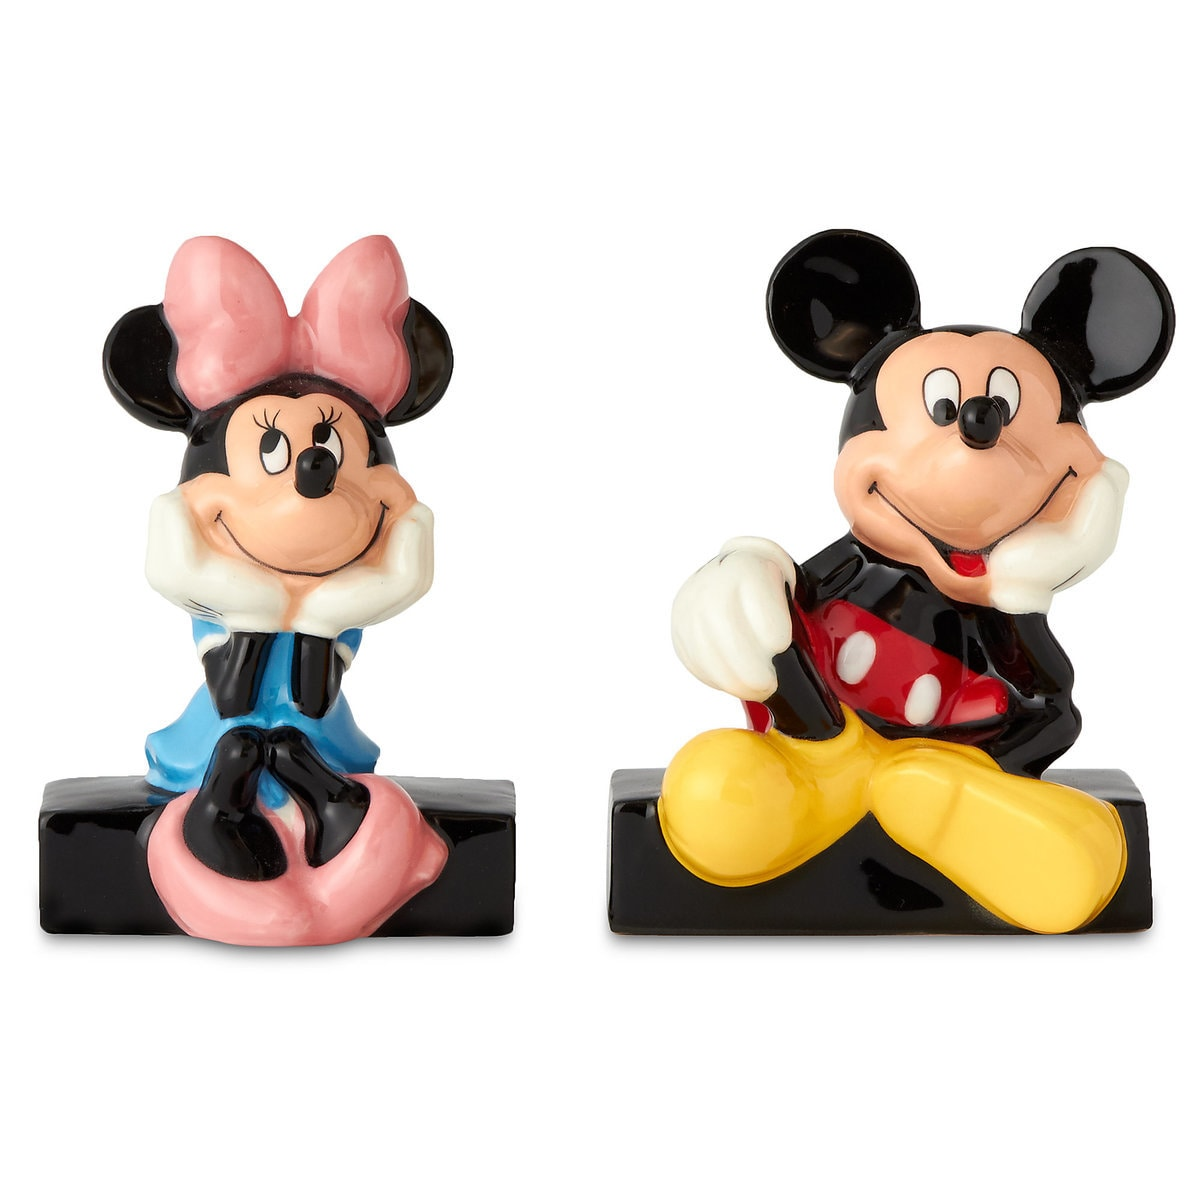 Mickey and Minnie Mouse Salt and Pepper Shaker Set | shopDisney